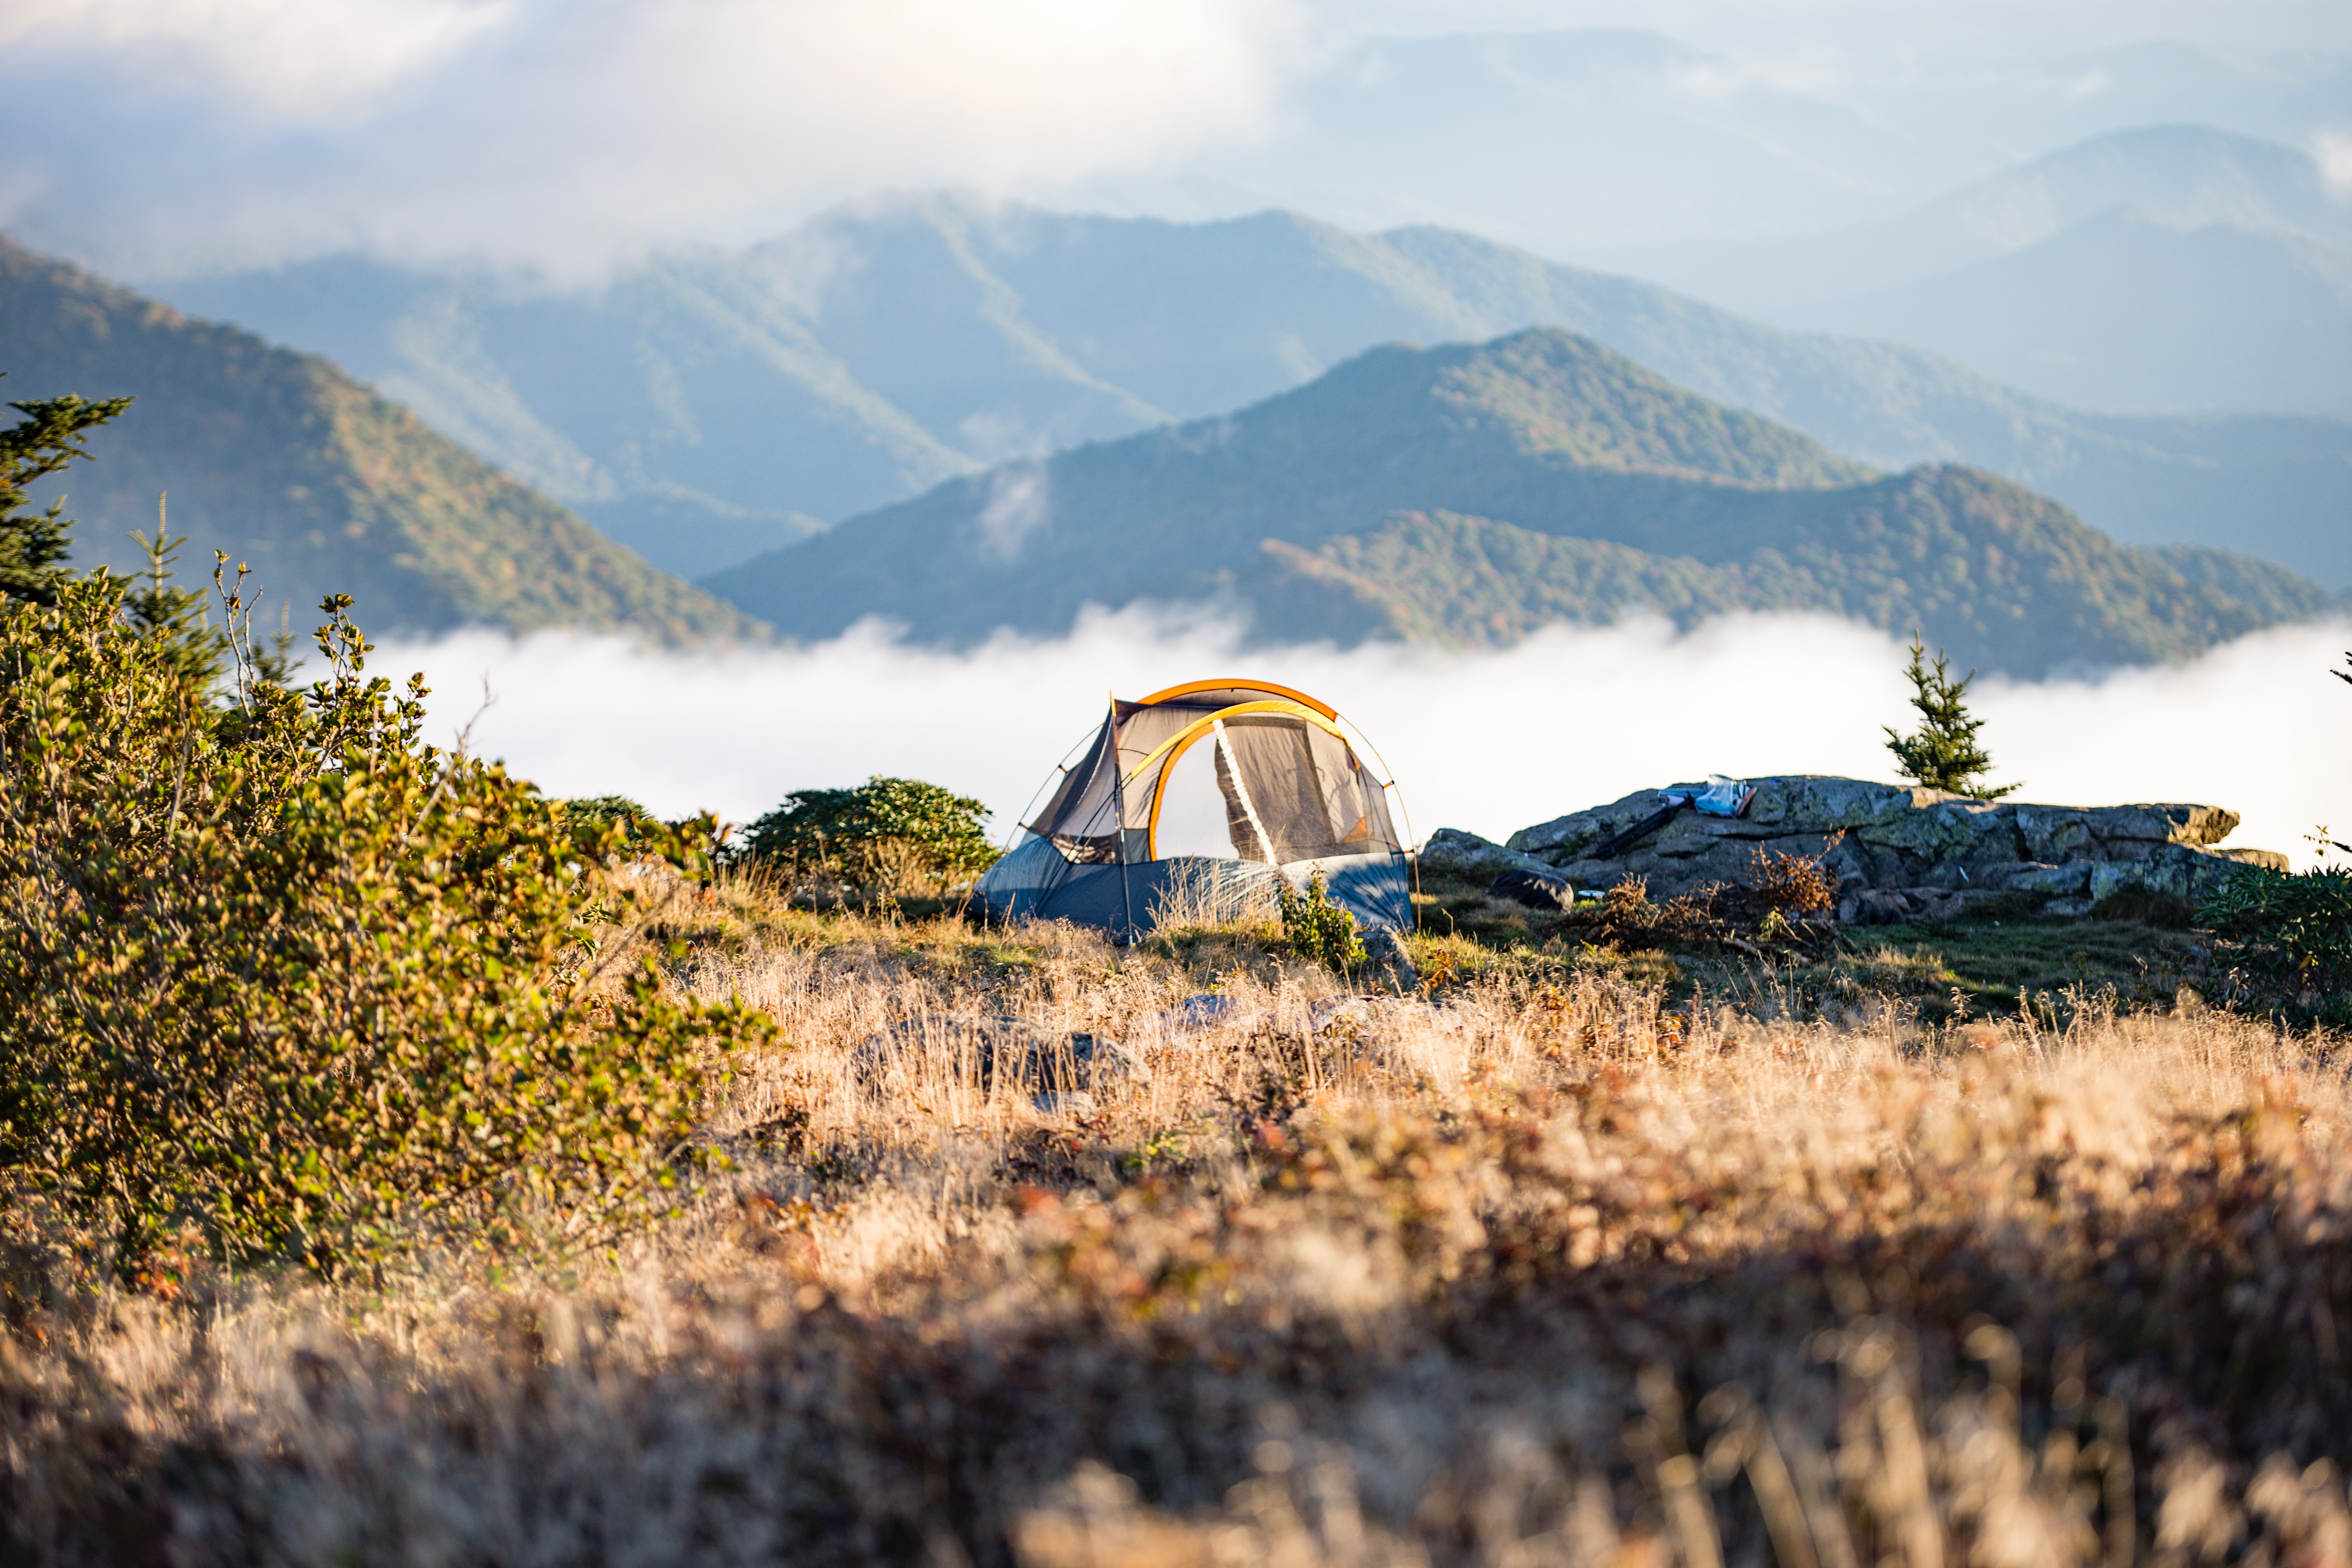 A small tent near thorny bushes on the side of a mountain